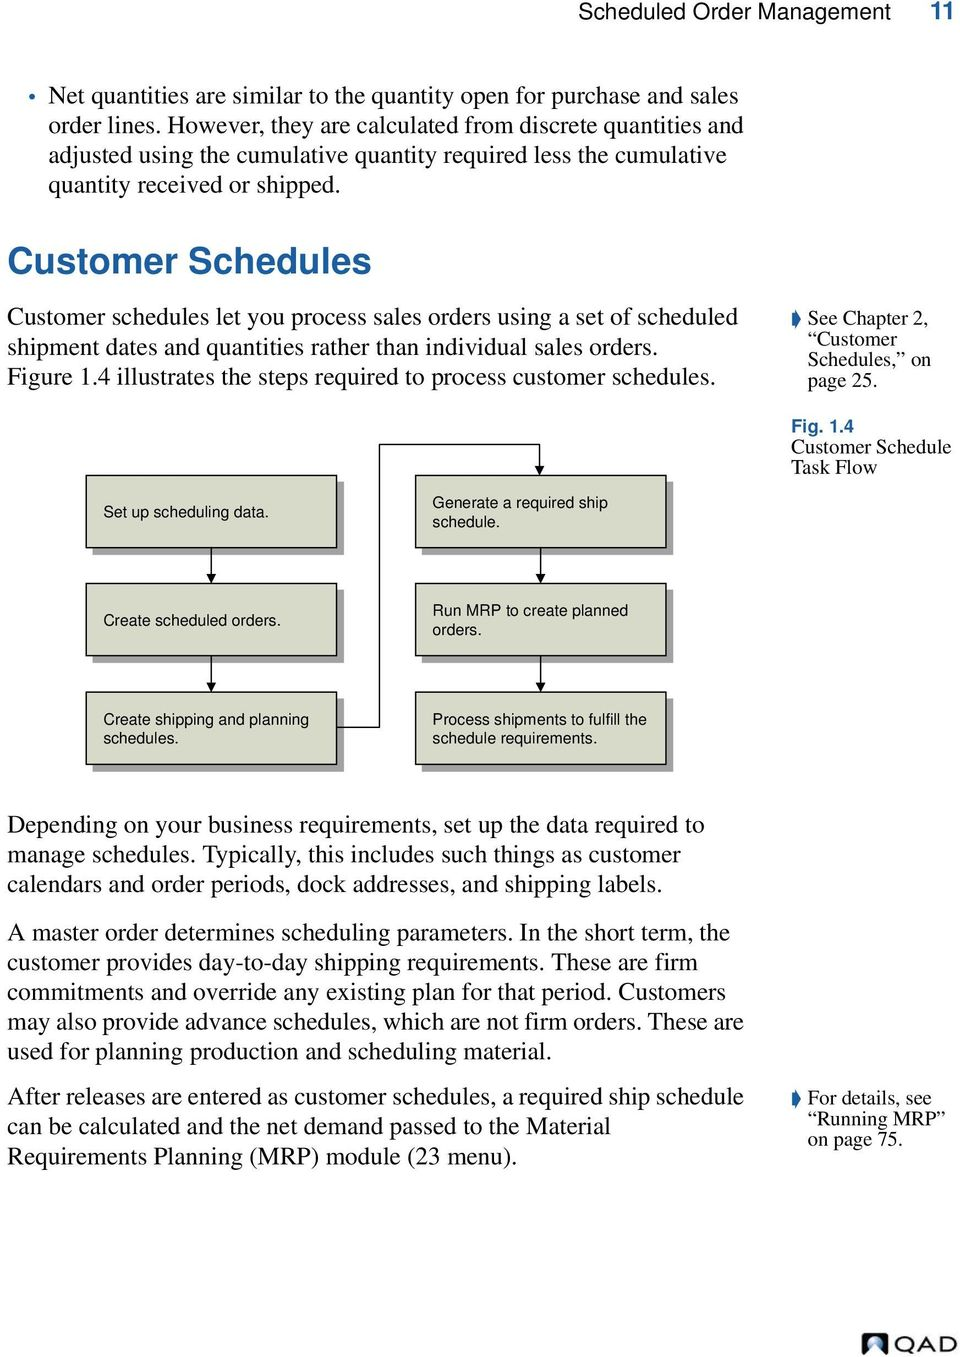 User Guide QAD Scheduled Order Management - PDF